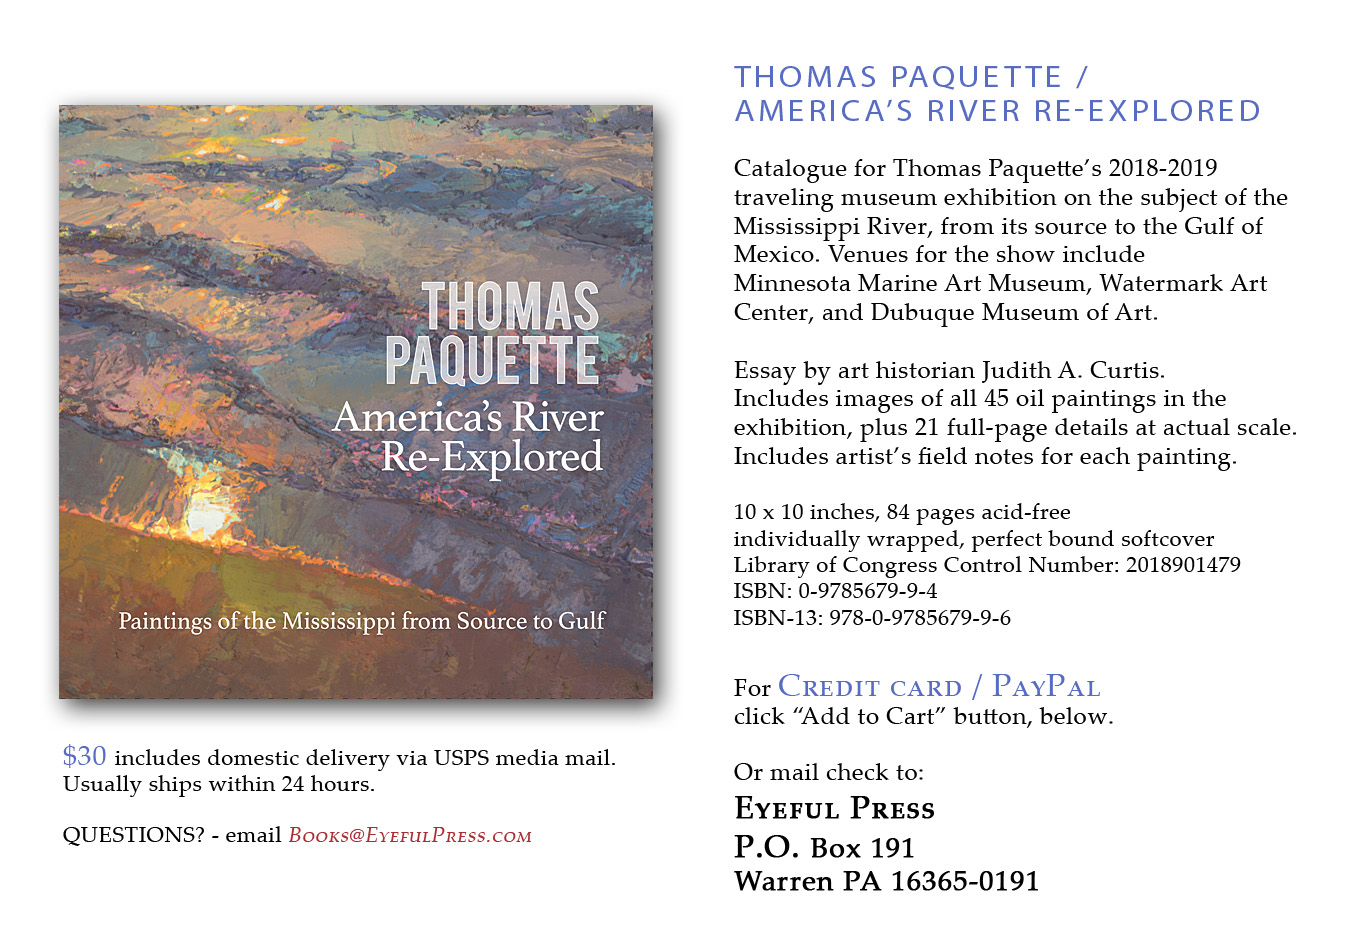 Catalogue for Thomas Paquettes 2018-2019 traveling museum exhibition on the subject of the Mississippi River, from its source to the Gulf of Mexico. Venues for the show include Minnesota Marine Art Museum, Watermark Art Center, and Dubuque Museum of Art. Essay by art historian Judith A. Curtis. Includes images of all 45 oil paintings in the exhibition, plus 21 full-page details at actual scale.